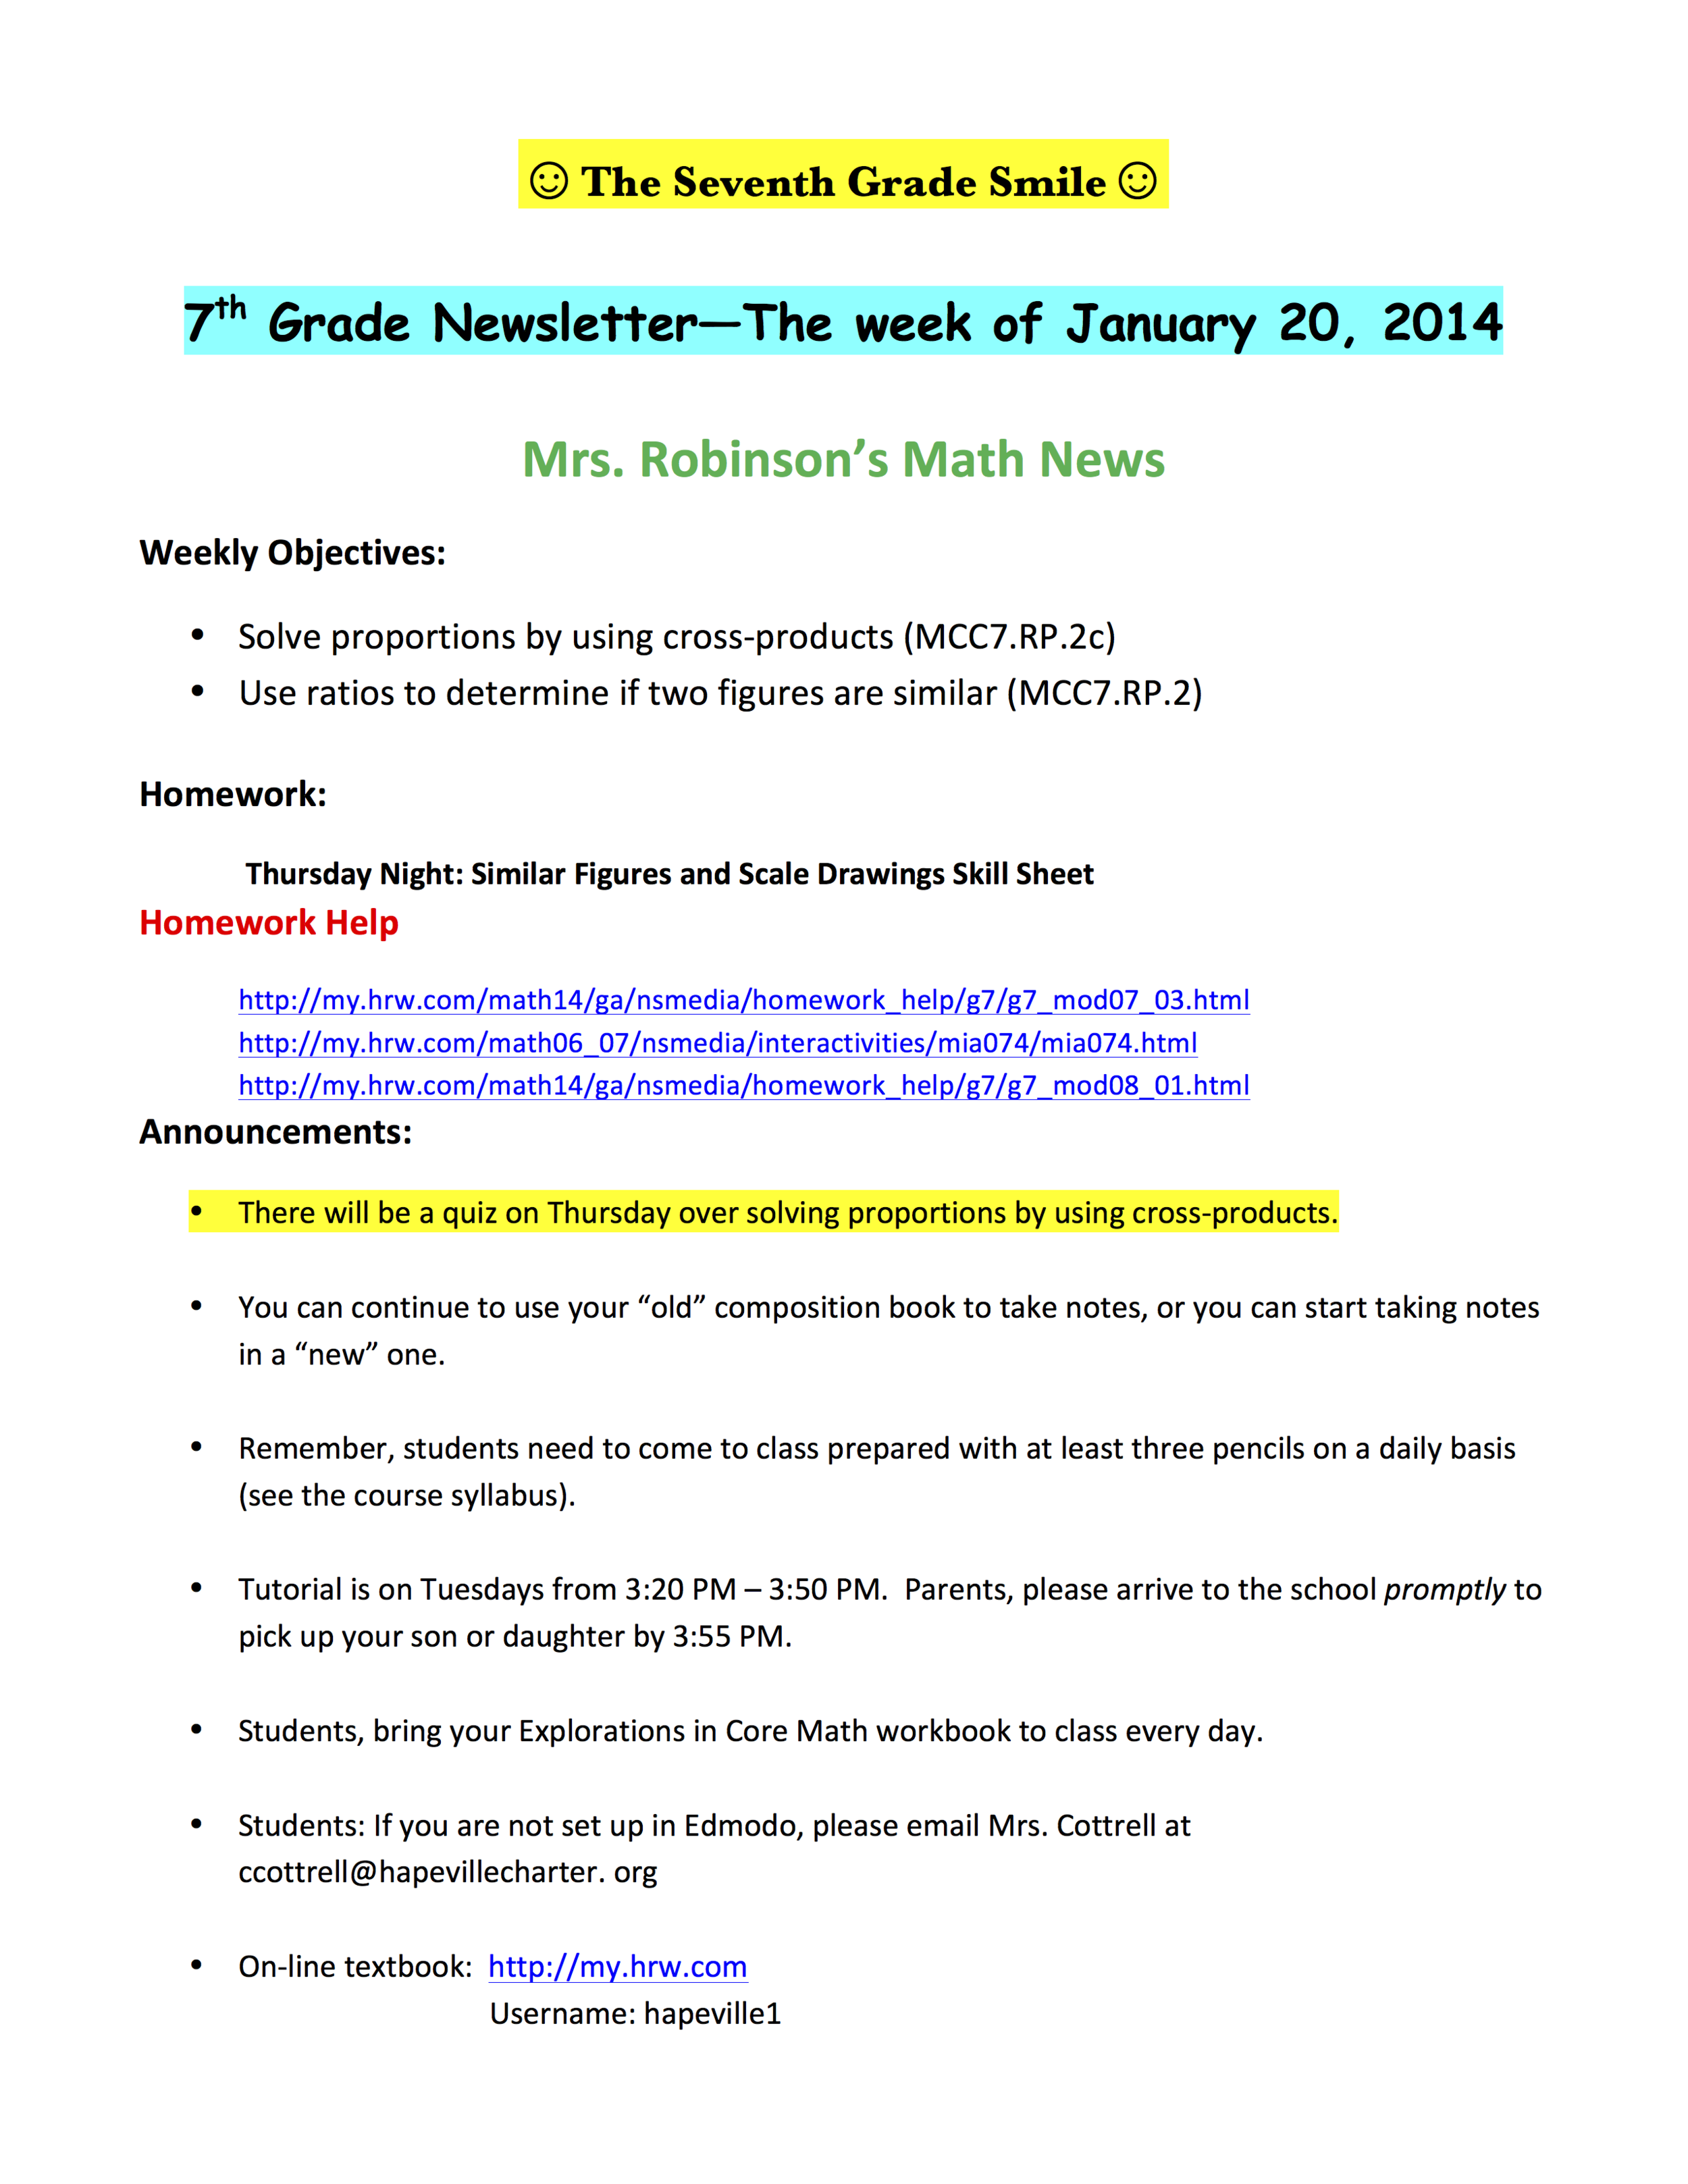 7th grade newsletter 1-21A.png